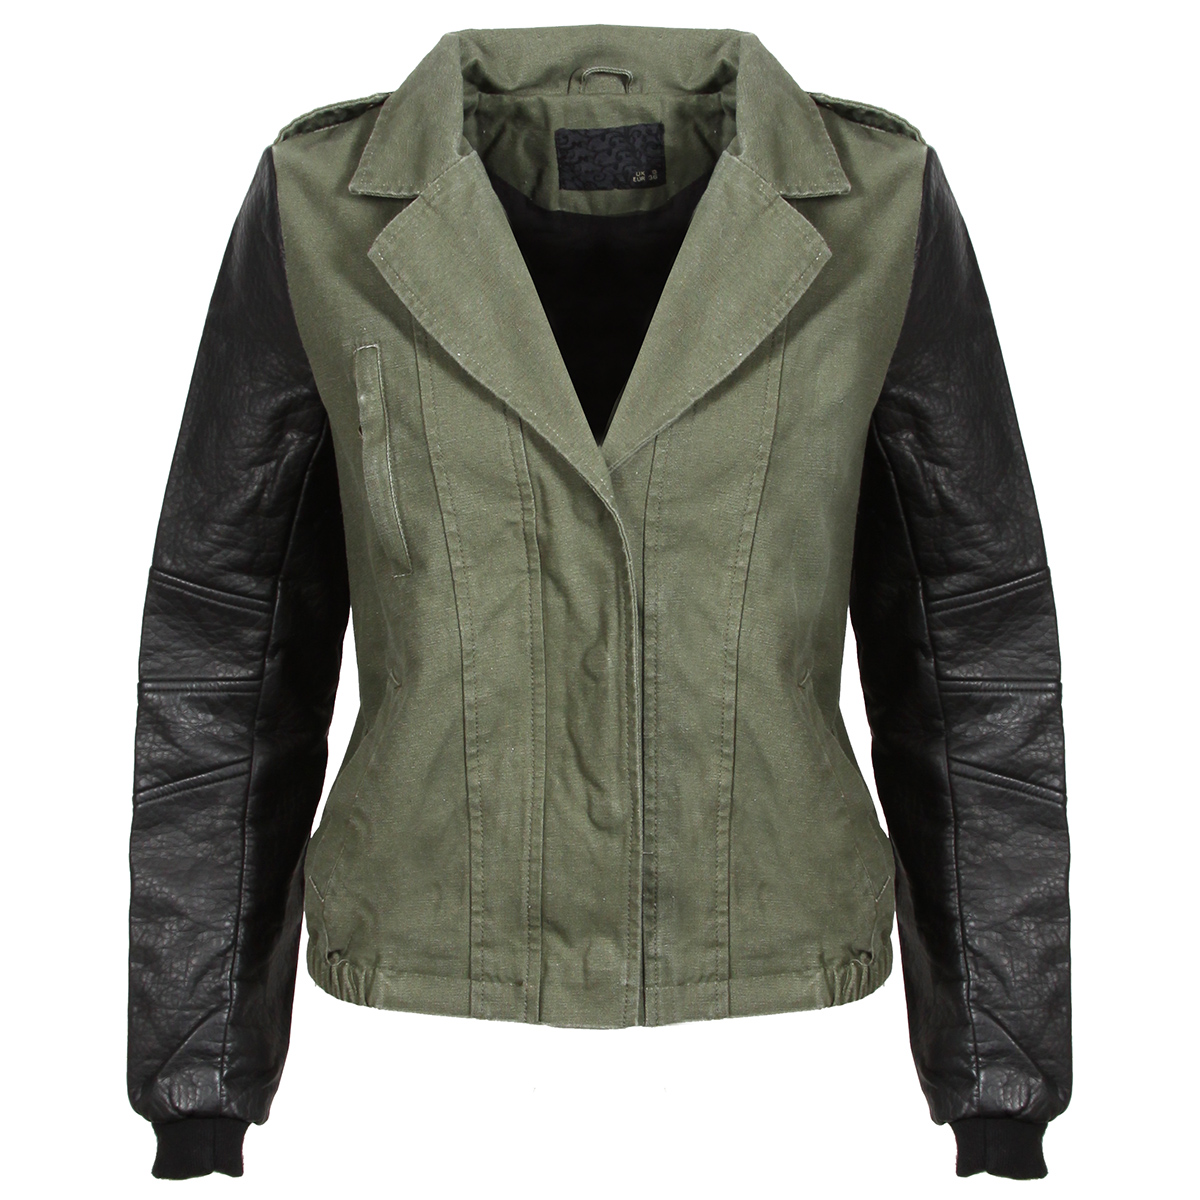 We offer women's coats and jackets in varied weights, so it's simple to find something new as the seasons change, or when you're traveling to a different region. Our women's jackets and coats come in varied colors and distinctive profiles, to keep you polished and comfortable wherever life takes you.